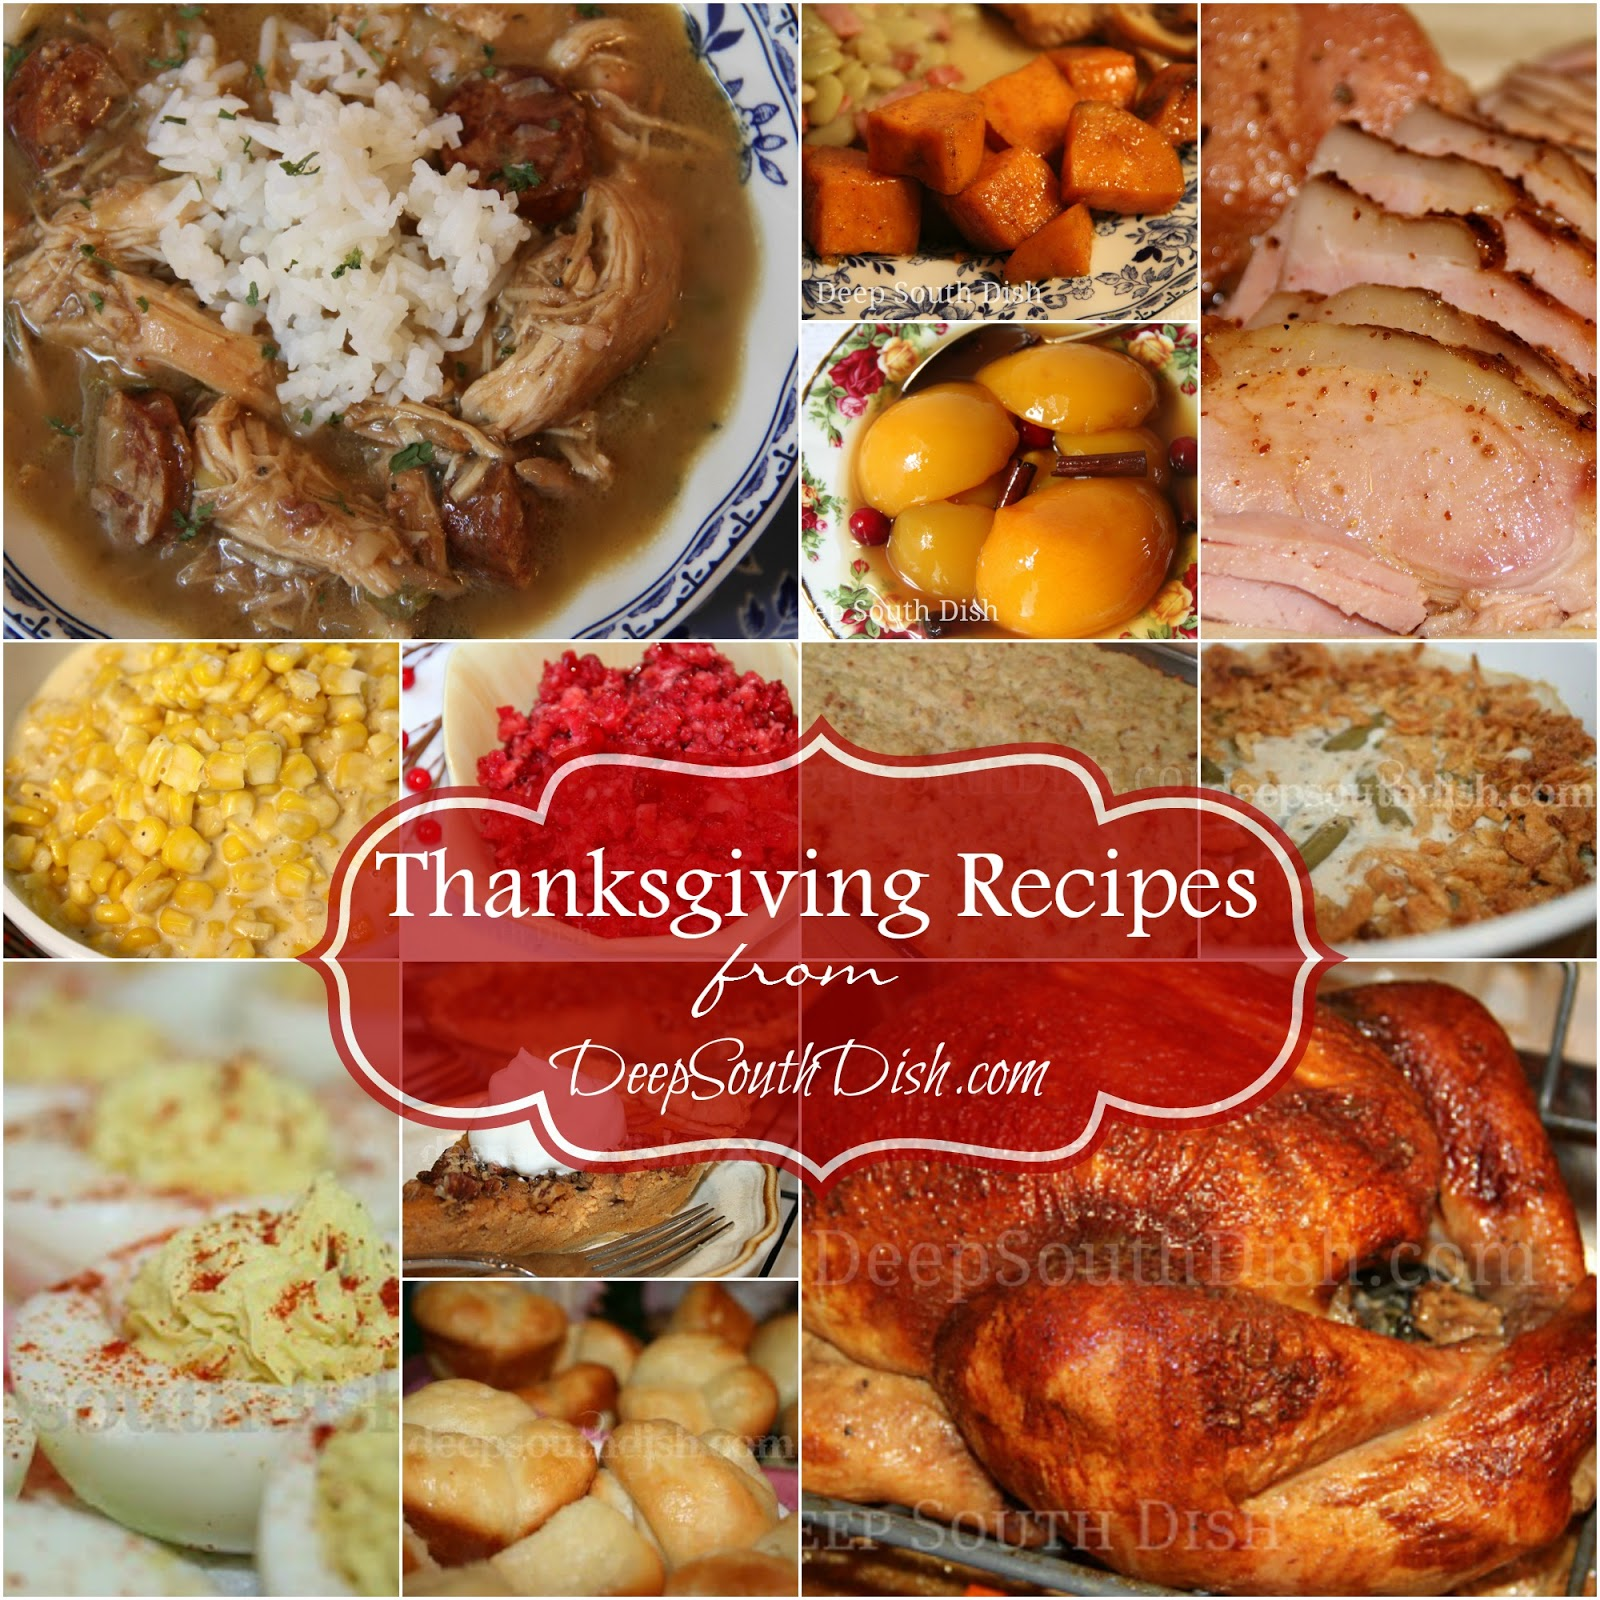 Decorating Ideas > Deep South Dish Deep South Southern Thanksgiving Recipes  ~ 074229_Thanksgiving Recipes Decorations